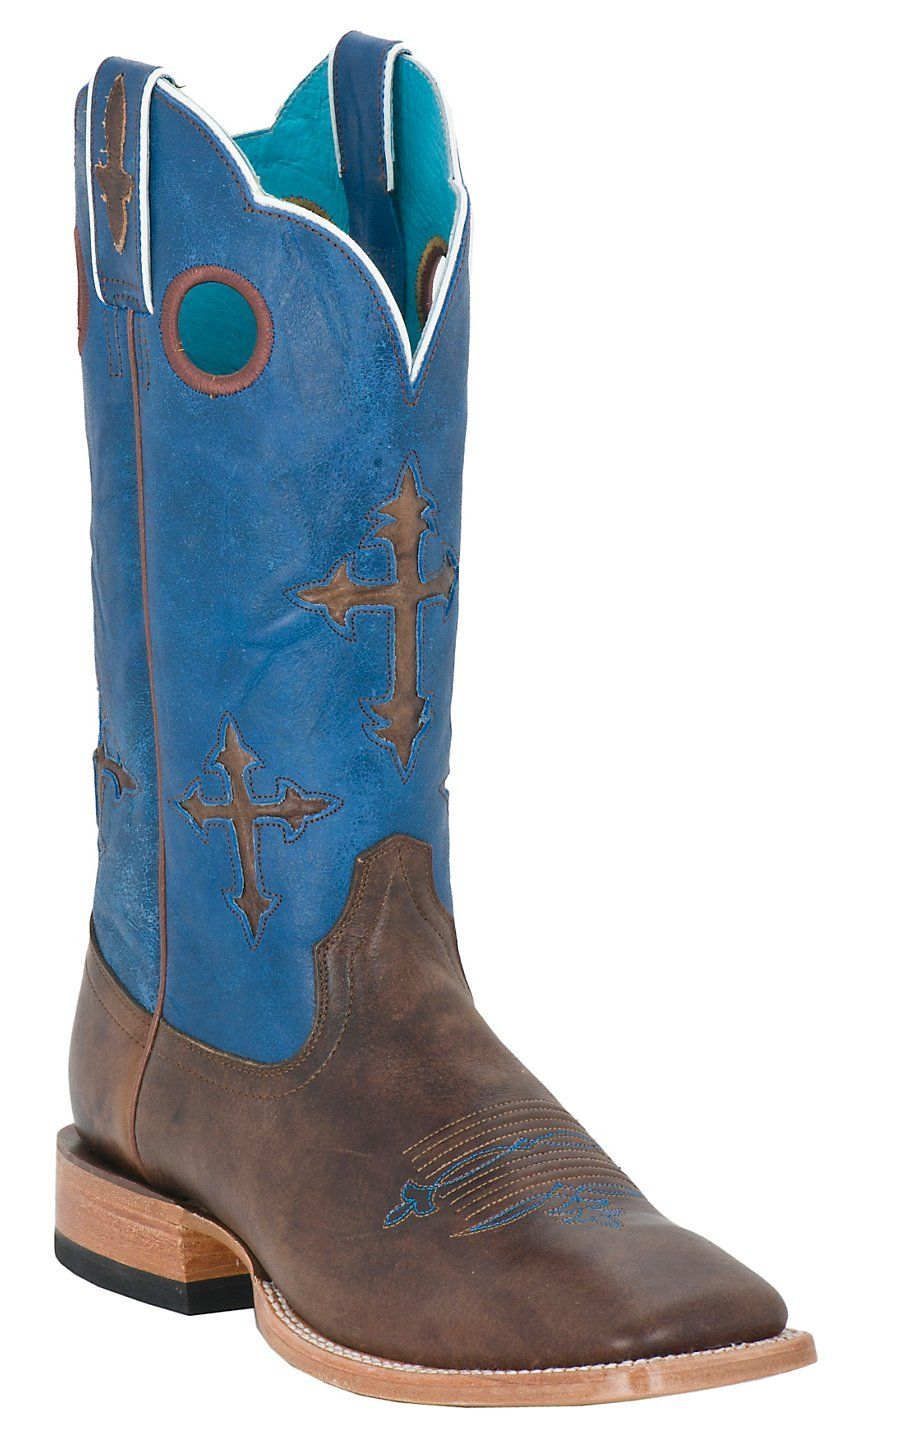 7686ebde6bb Ariat Ranchero Men's Brown with Crosses on Blue Top Square Toe ...